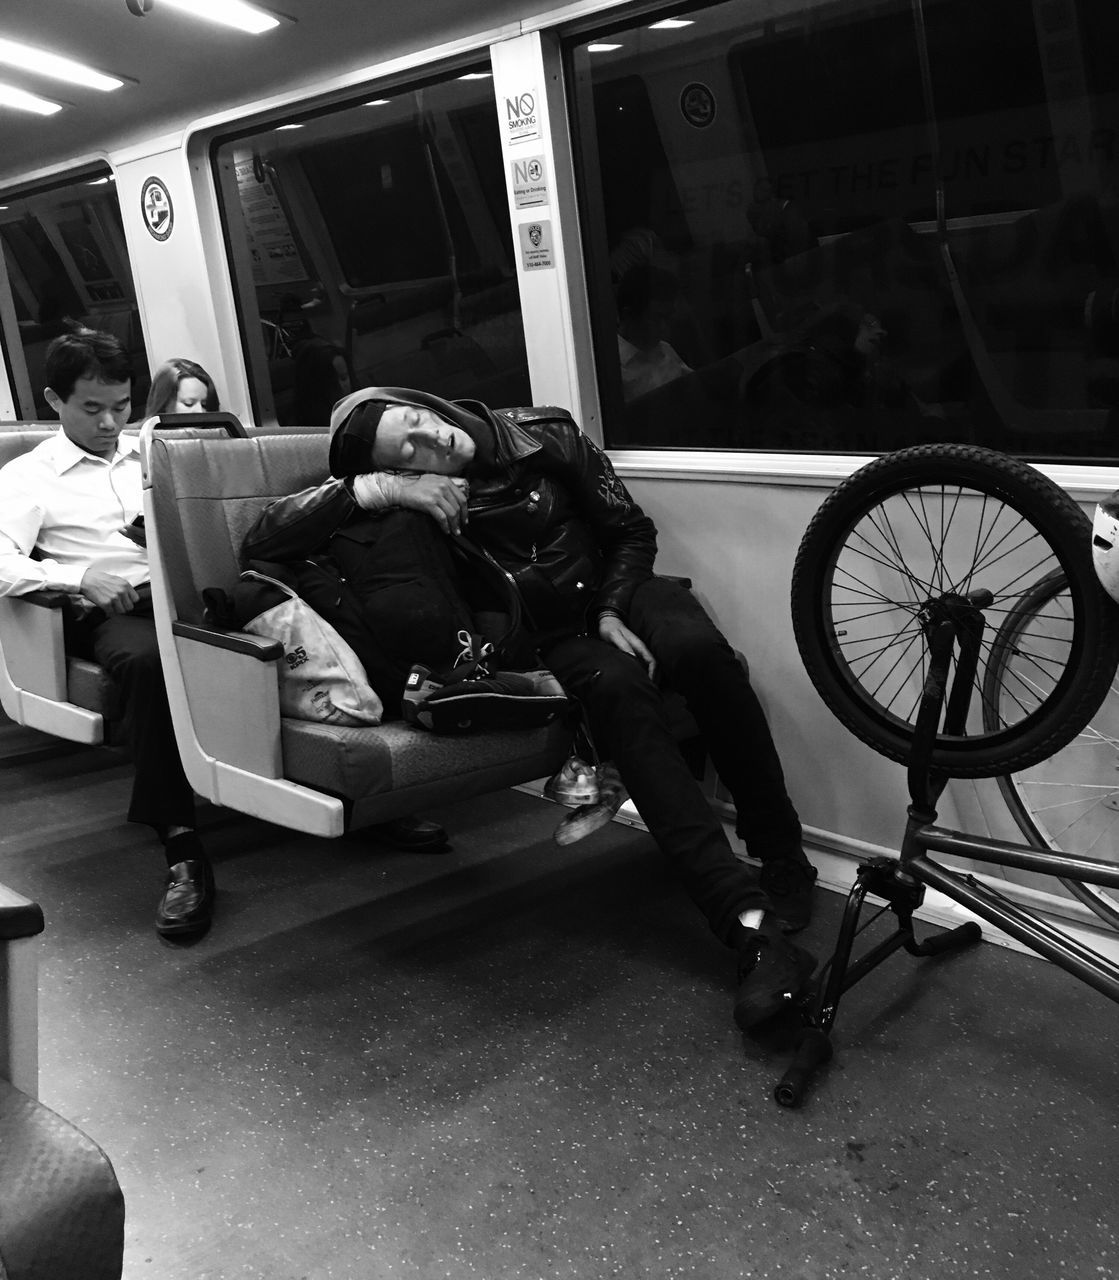 transportation, indoors, full length, real people, wheelchair, men, day, people